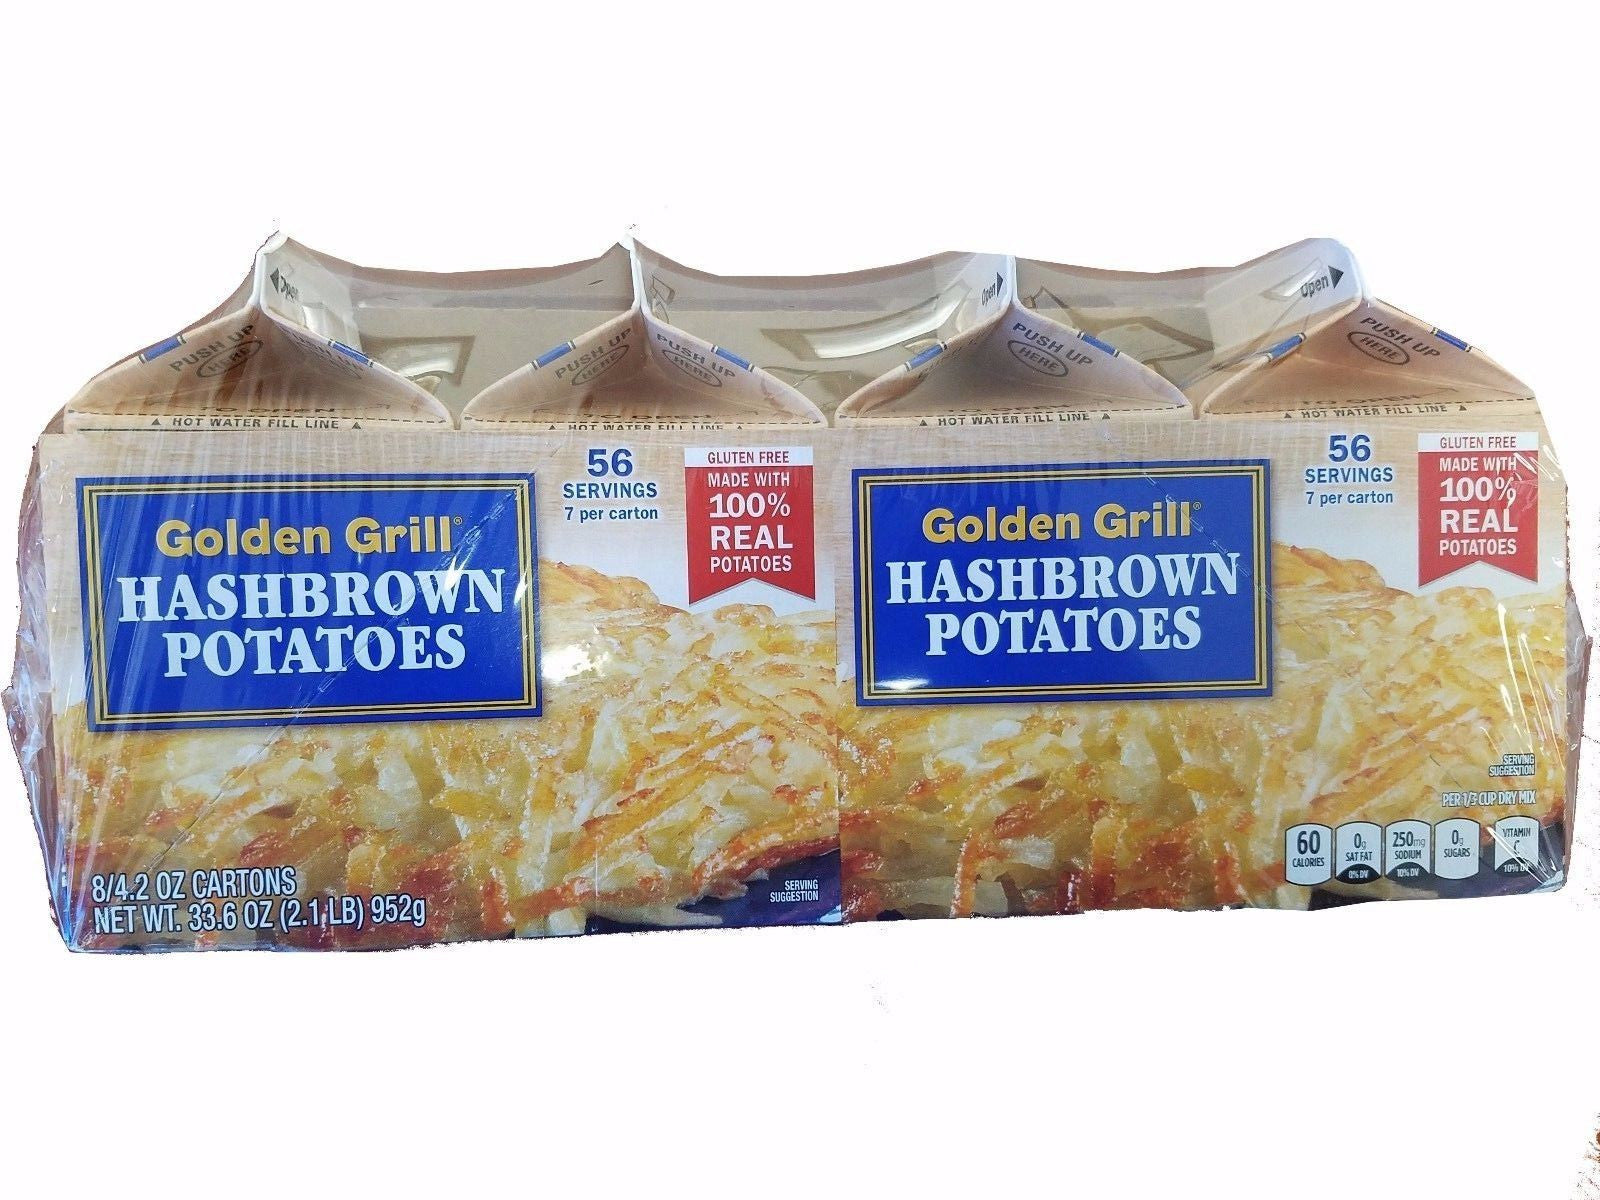 Golden Grill Hashbrown 100% Real Potatoes 56 Servings Gluten Free 33.6oz (2.1LB)